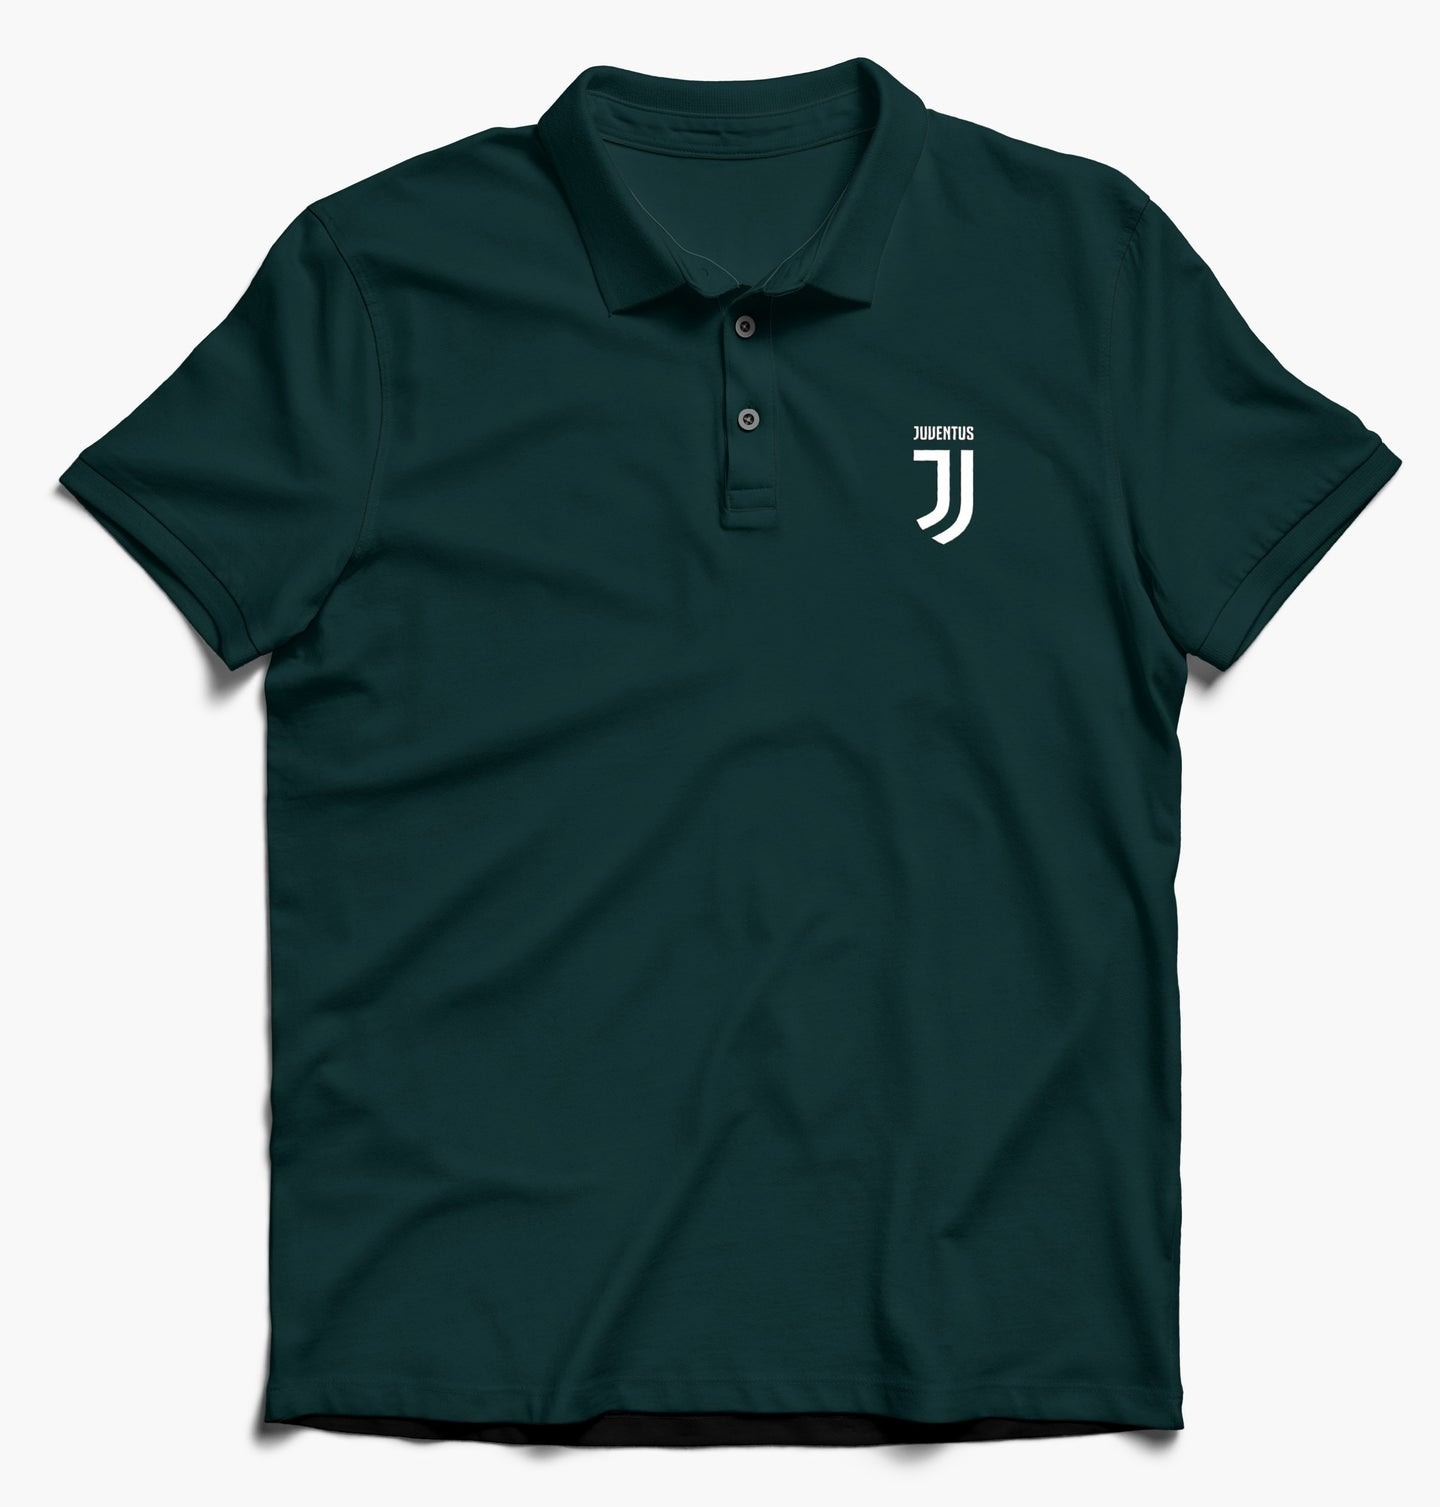 Juventus Half Sleeves Polo T-Shirt For Men-Export Fit